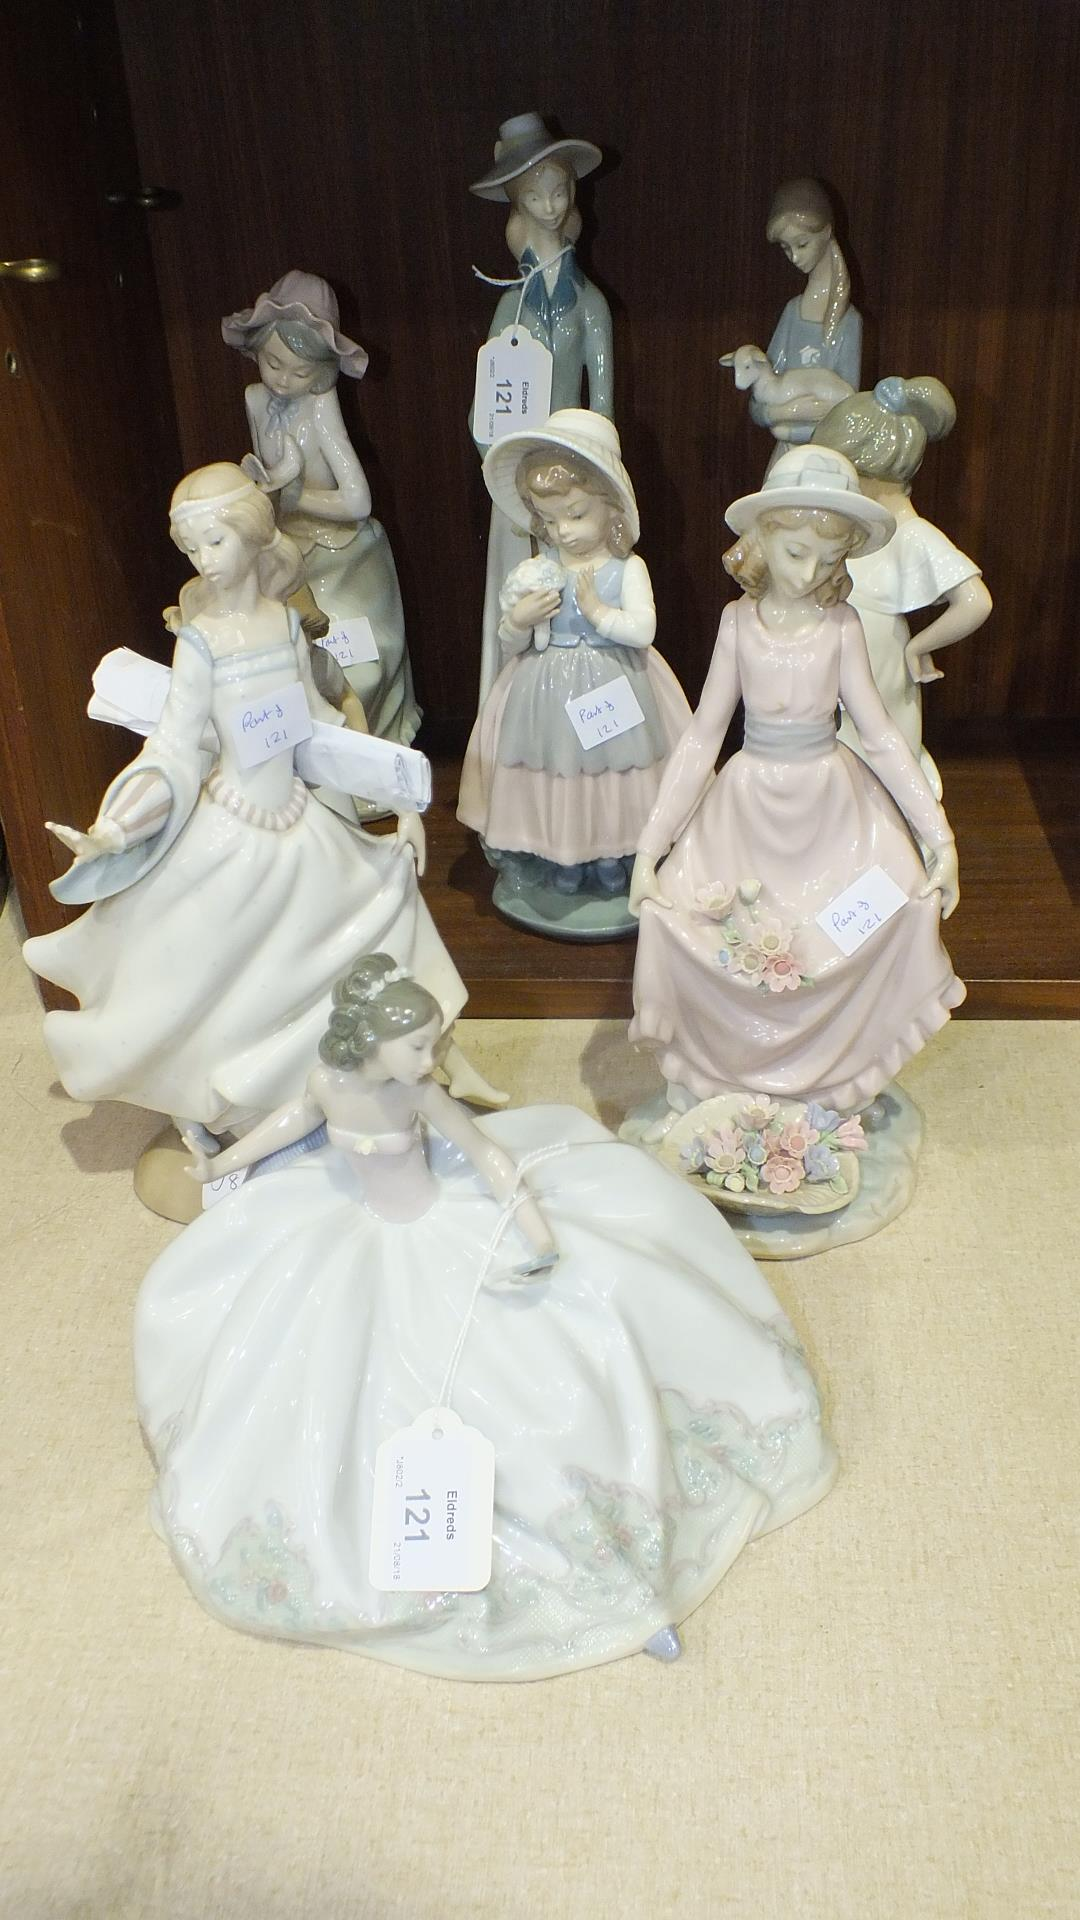 Lot 121 - A Lladro ballerina figurine, three others (af), and a group of five Nao figurines, (9).